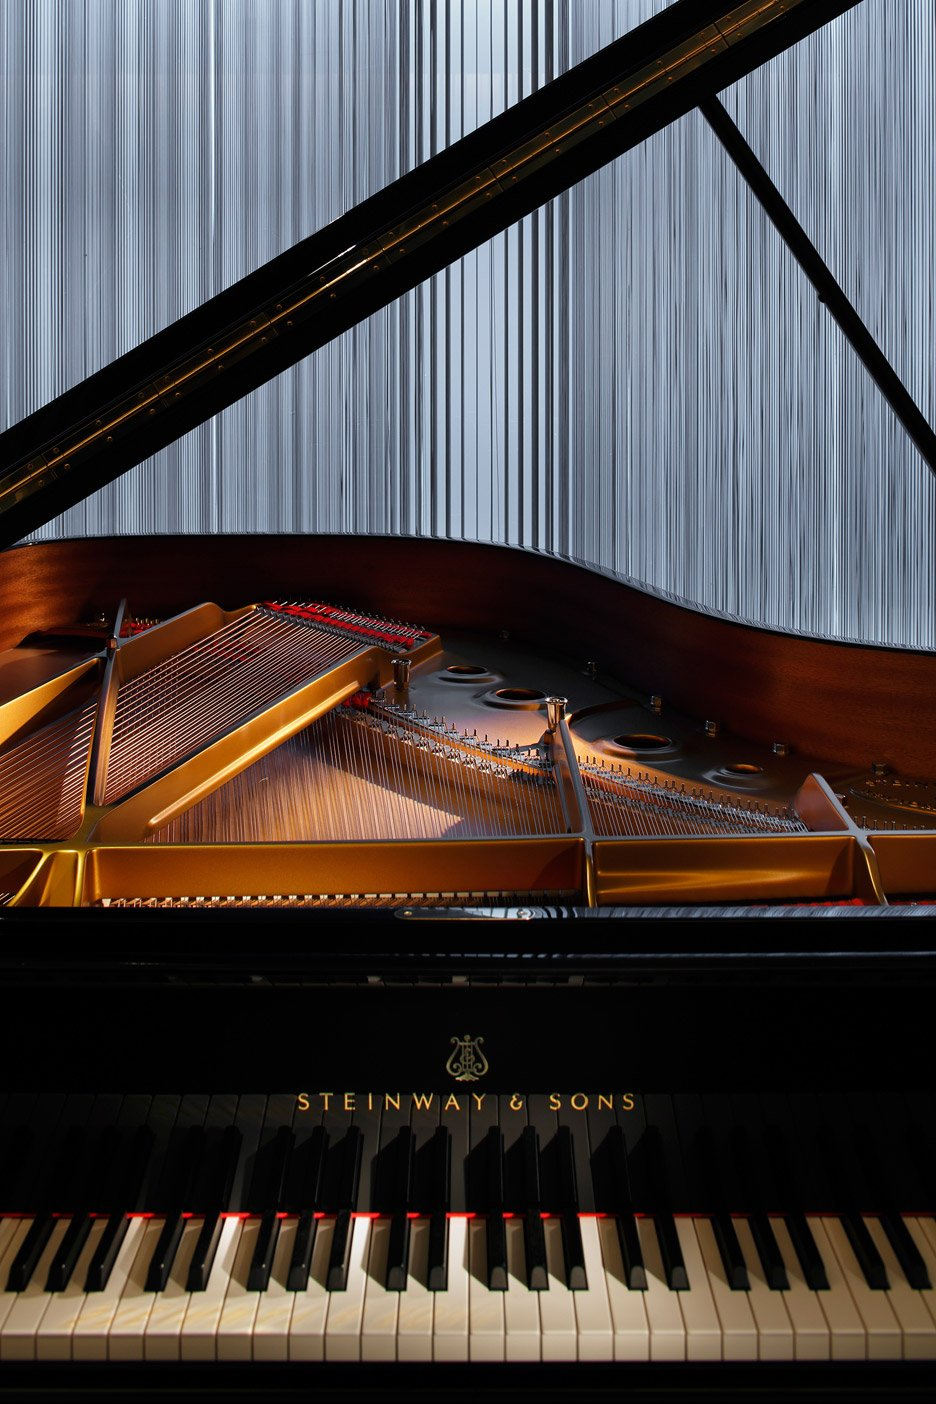 steinway-and-sons-flagship-shop-ogata-yoshiki-salt_dezeen_936_19